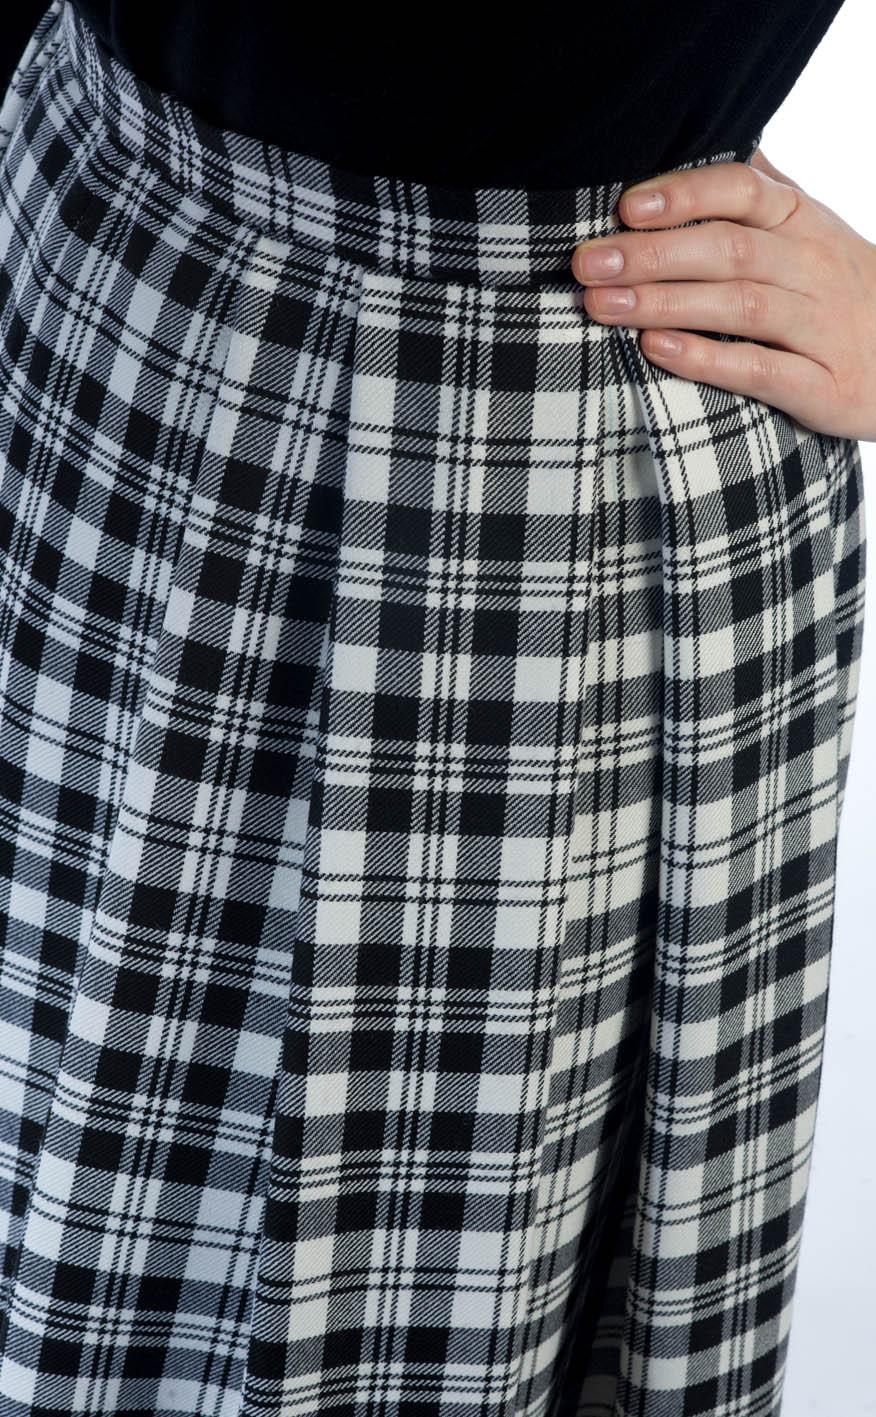 swhdr-sr_swhdr_soft_pleat_1